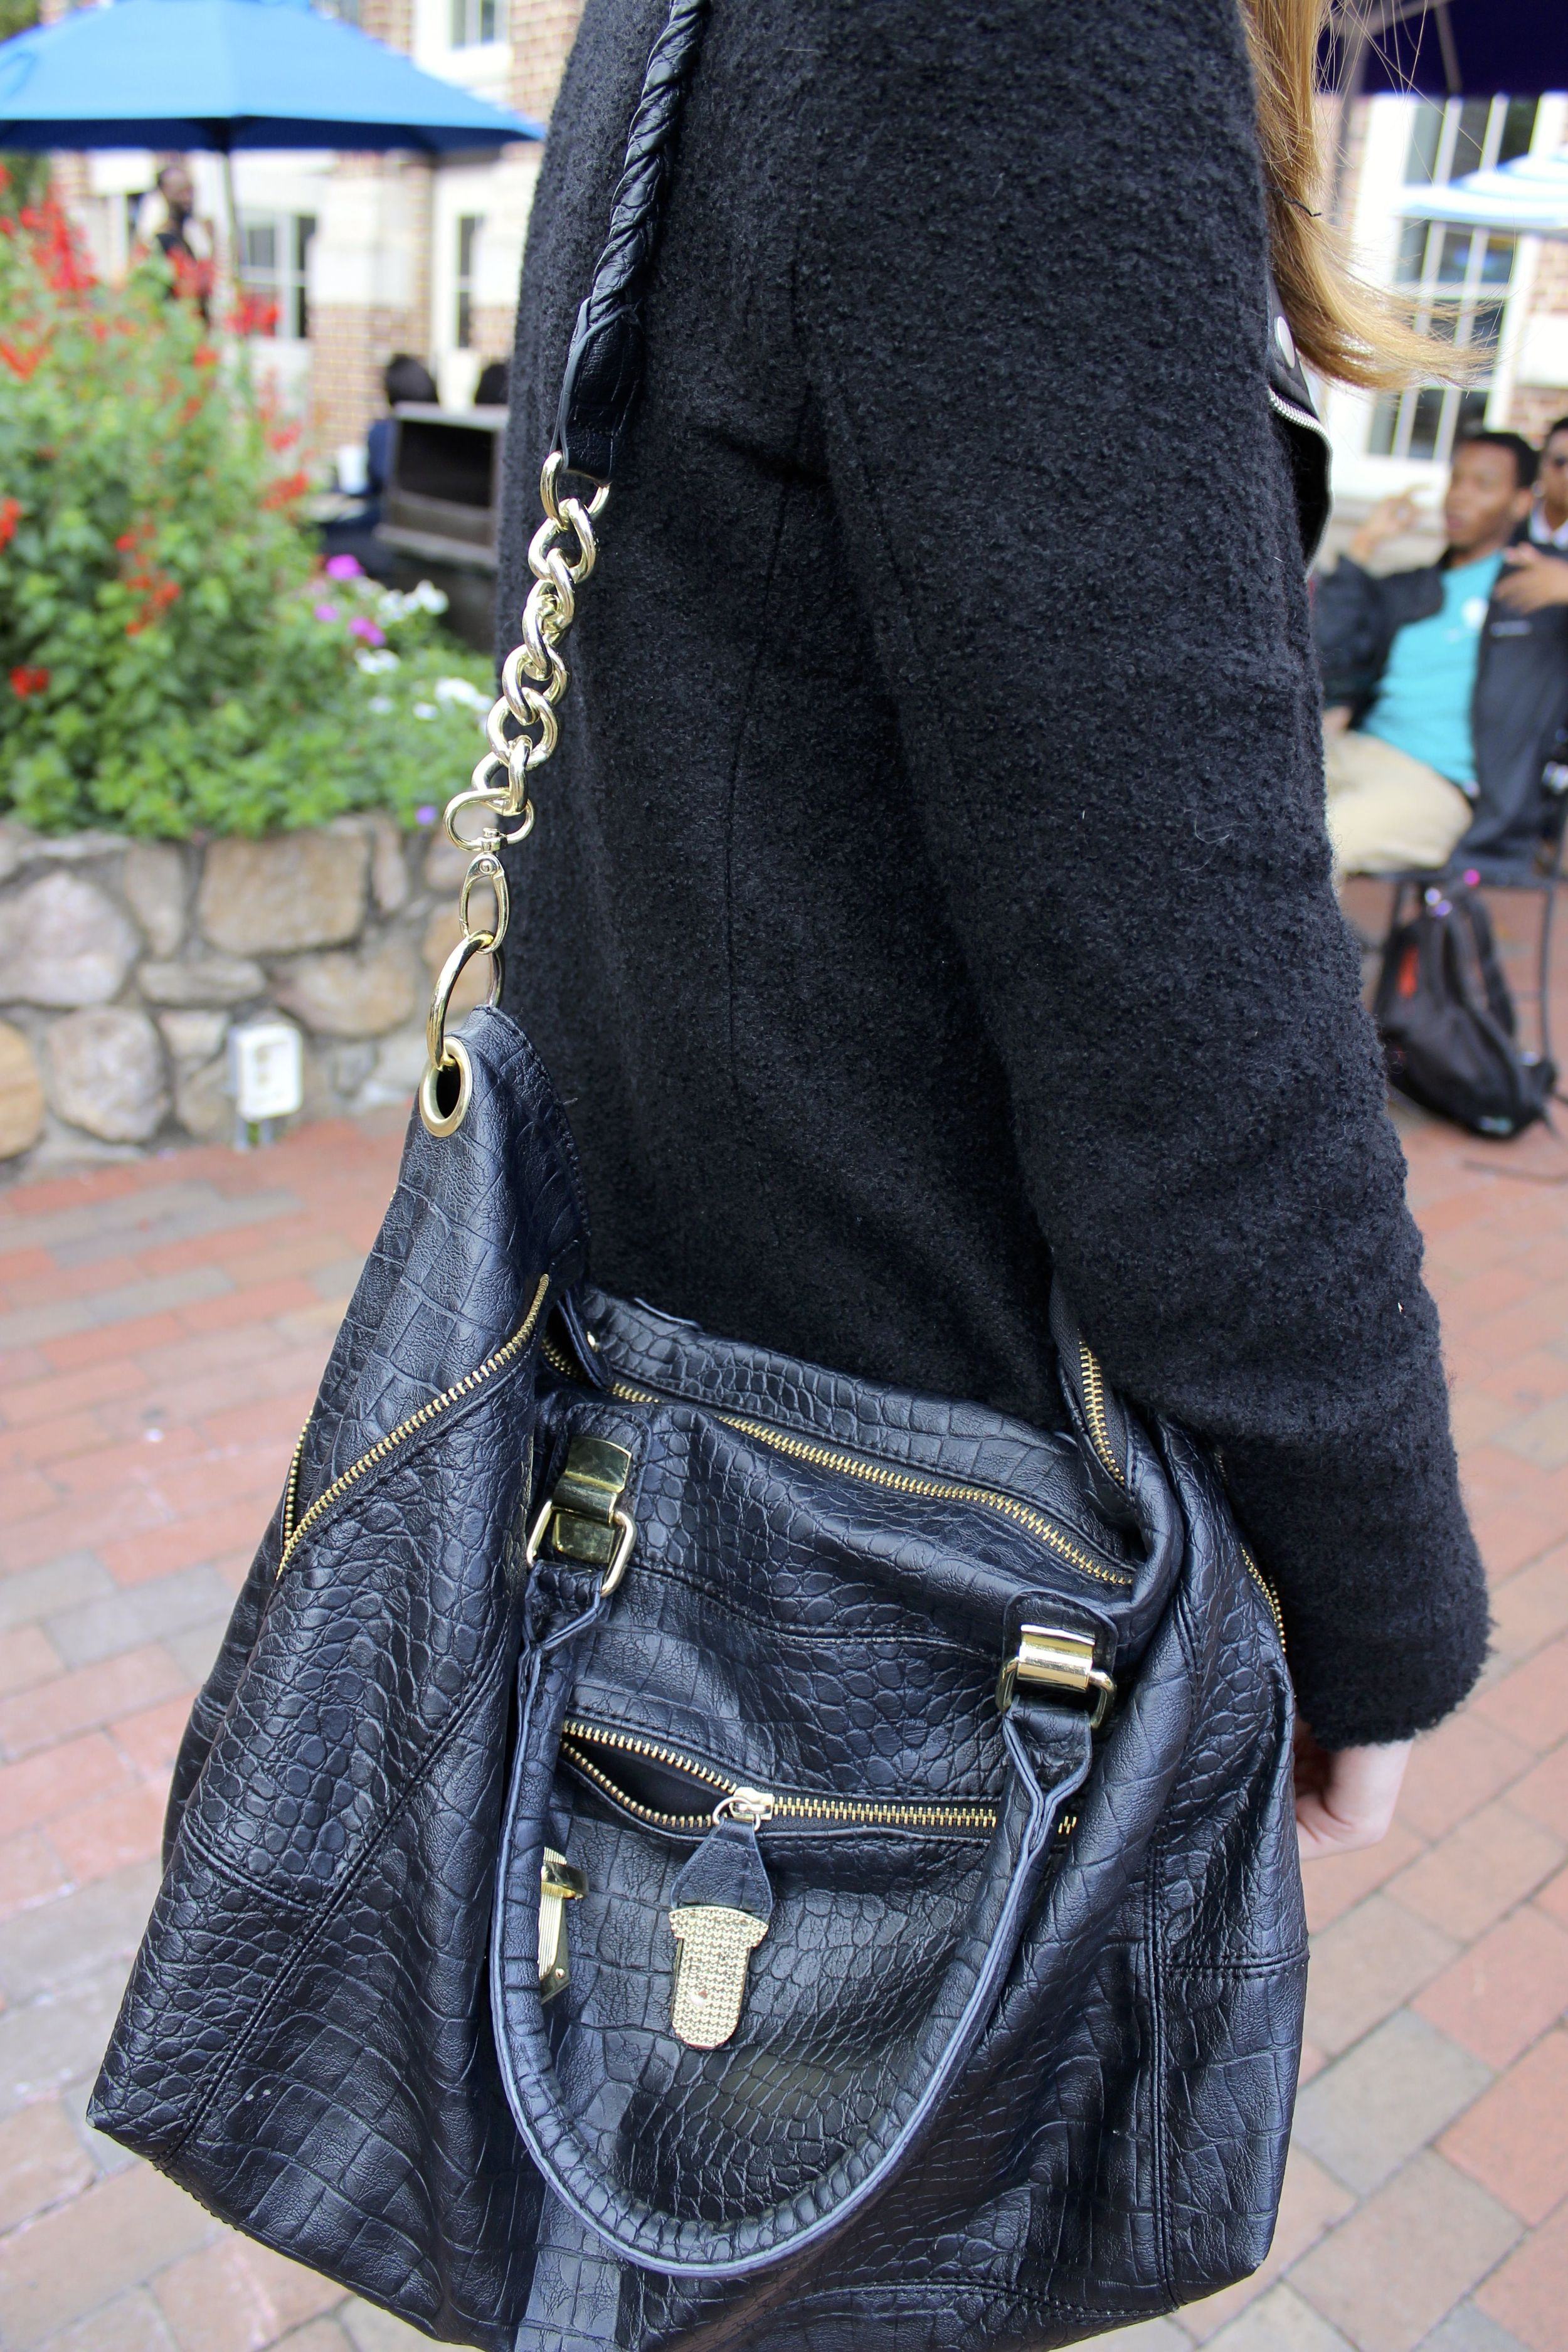 Leather hand bag at University of North Carolina #UNC